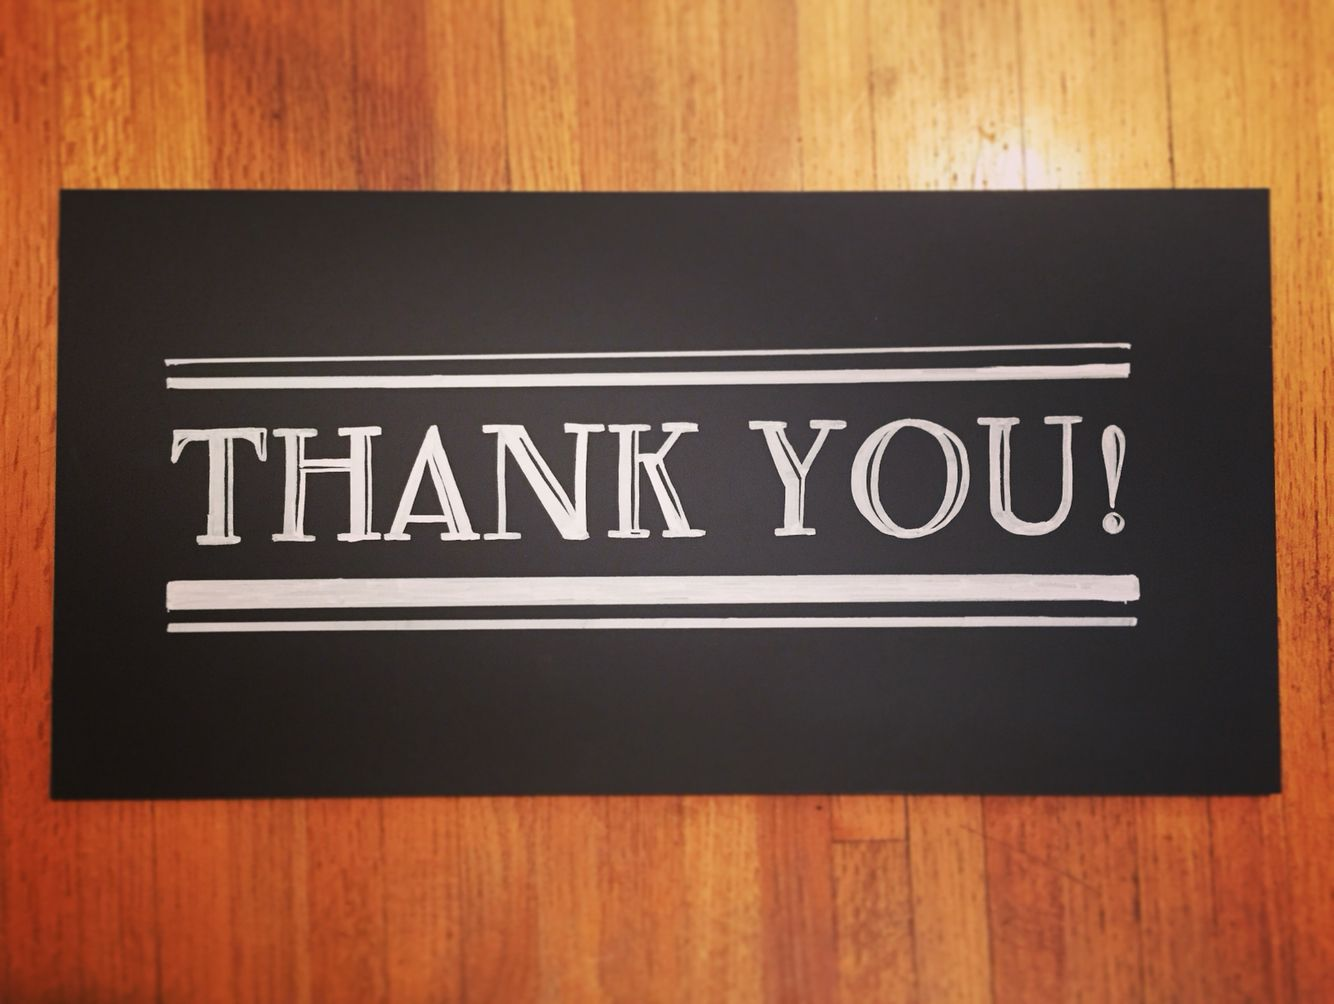 Thank you chalkboard one of a kind and hand drawn